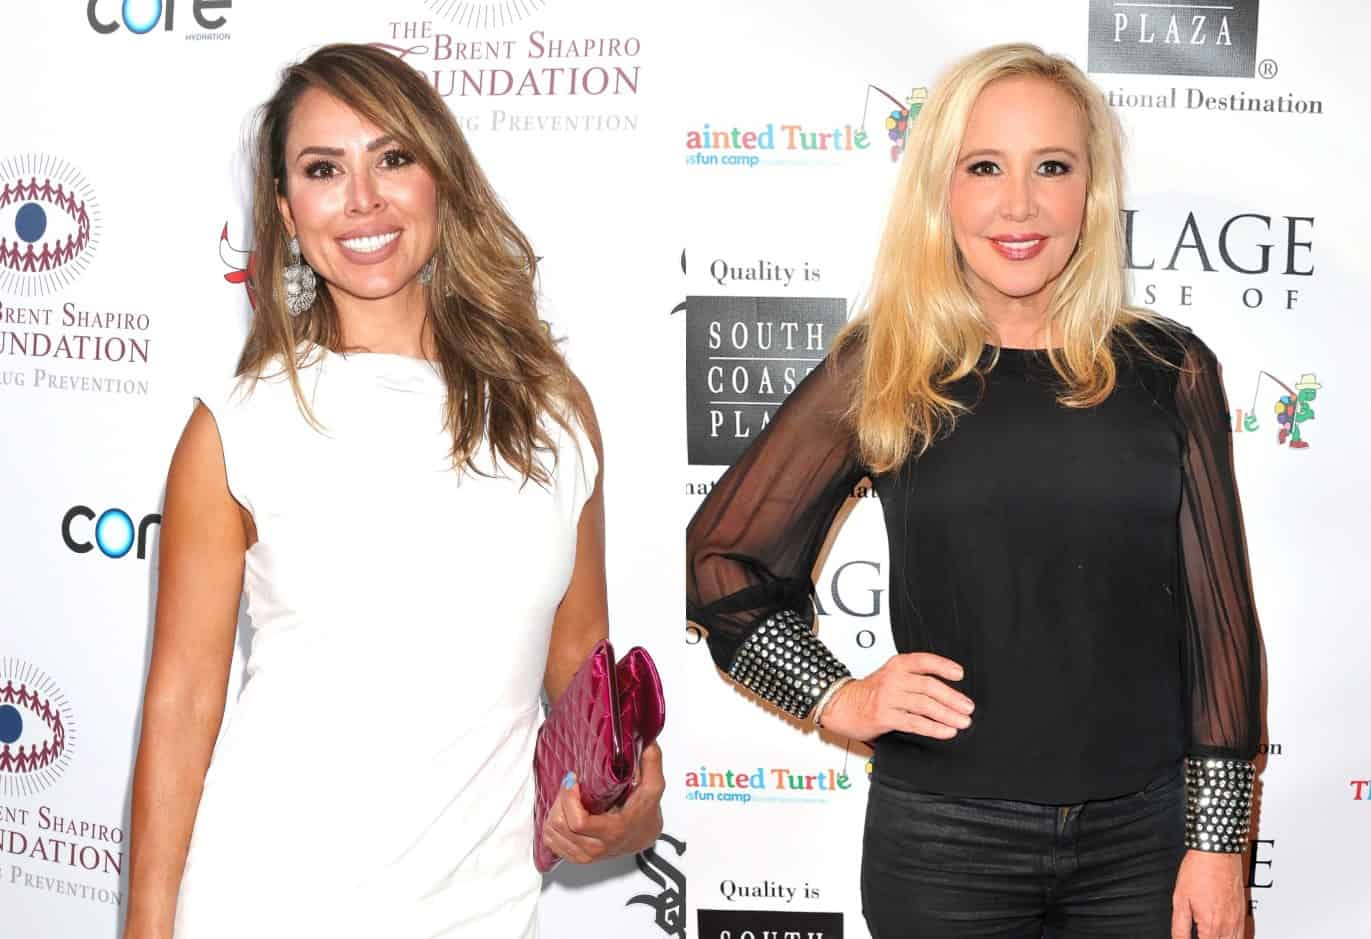 RHOC Star Kelly Dodd Reveals the Real Reason for Her Feud With Shannon Beador